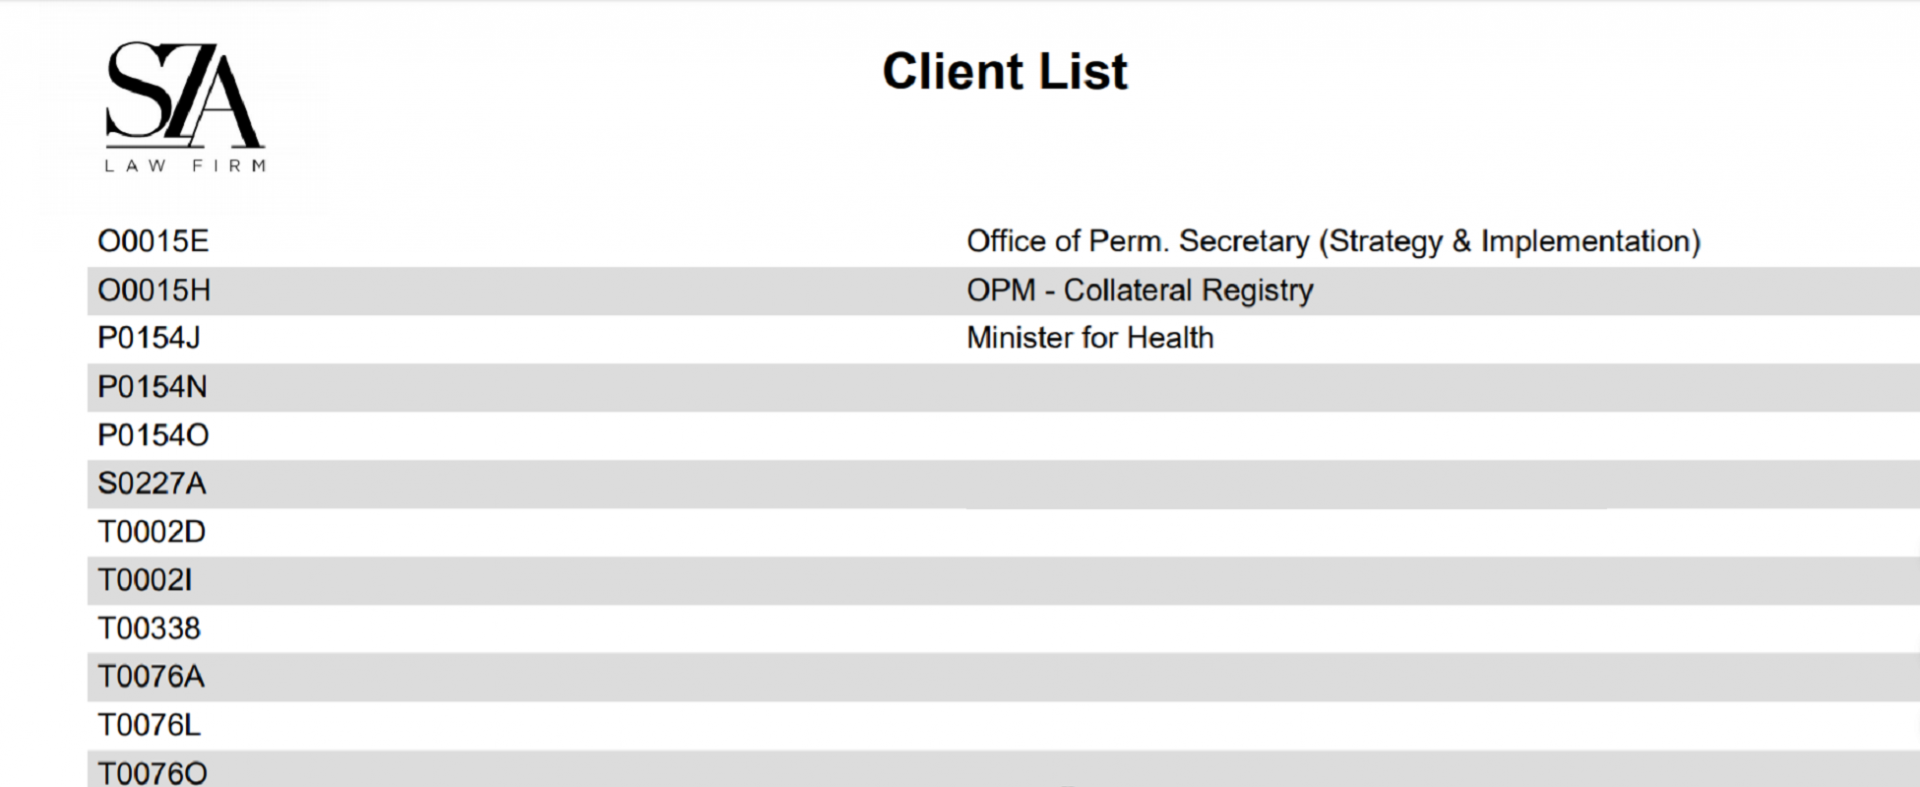 A sample of the client list leaked online. Information about private clients has been redacted by Times of Malta.